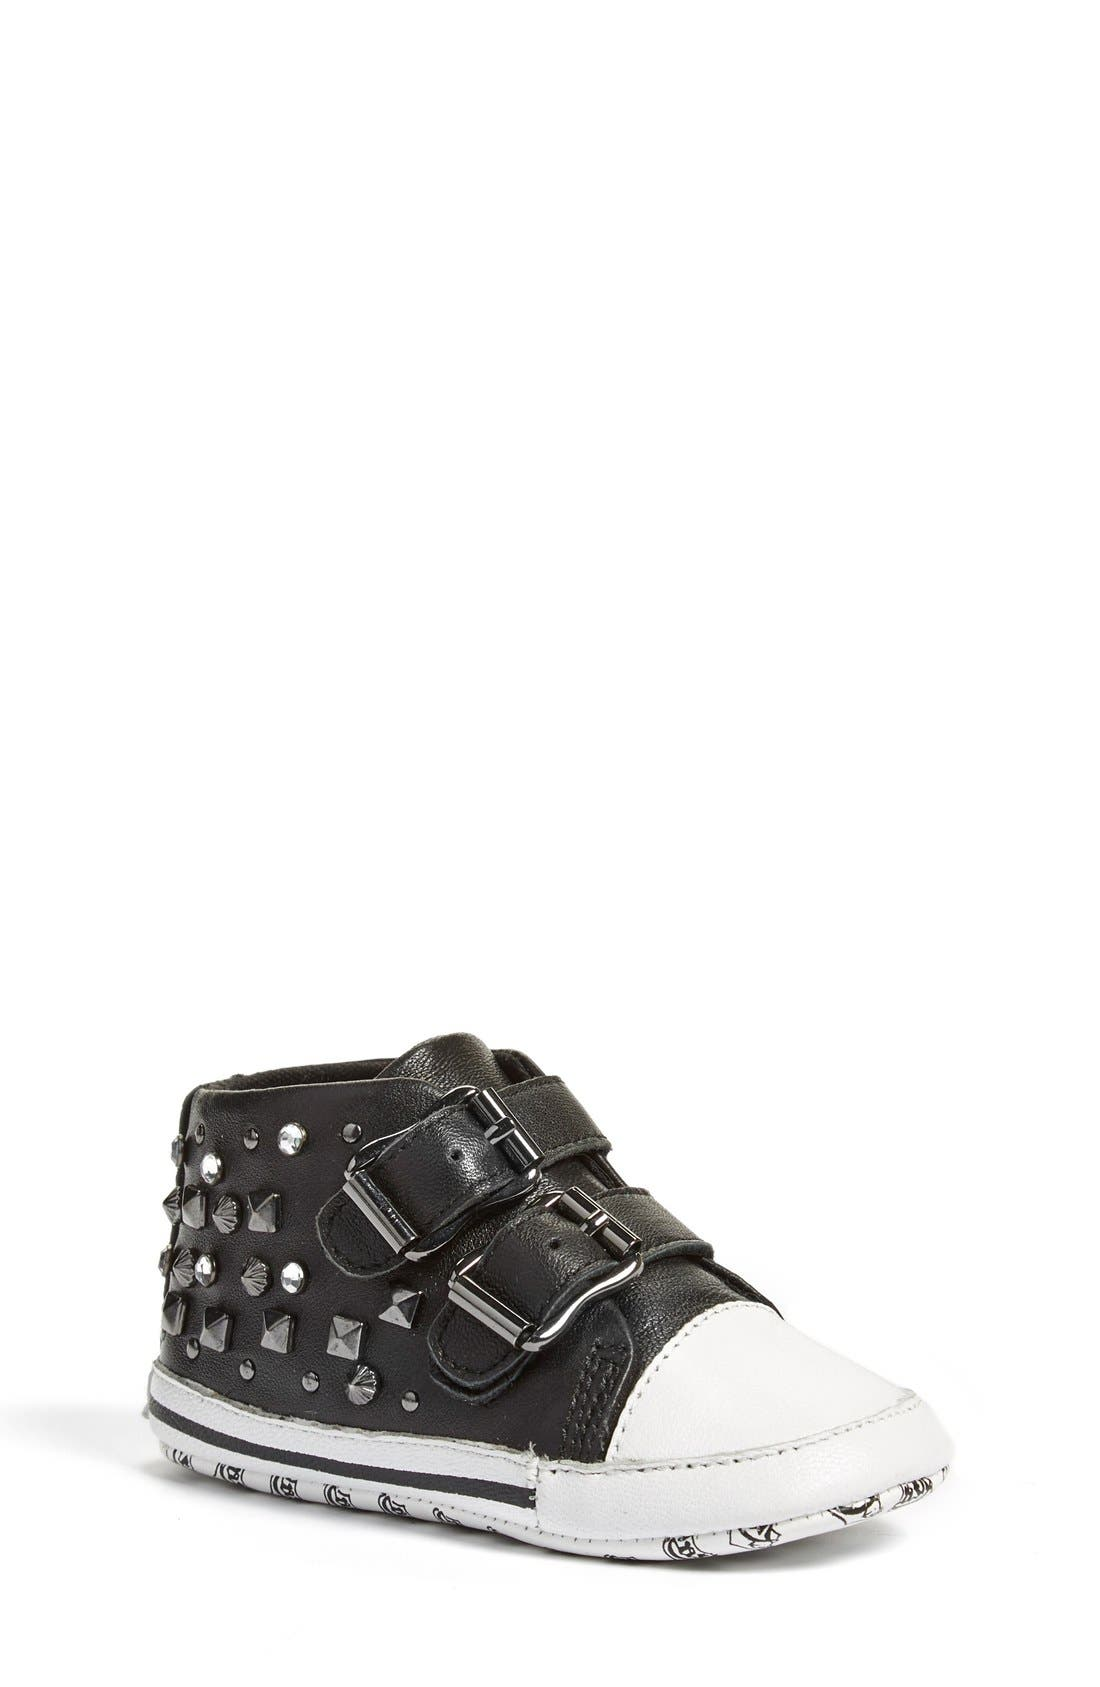 'Viper' High Top Crib Shoe,                             Main thumbnail 1, color,                             Black Leather